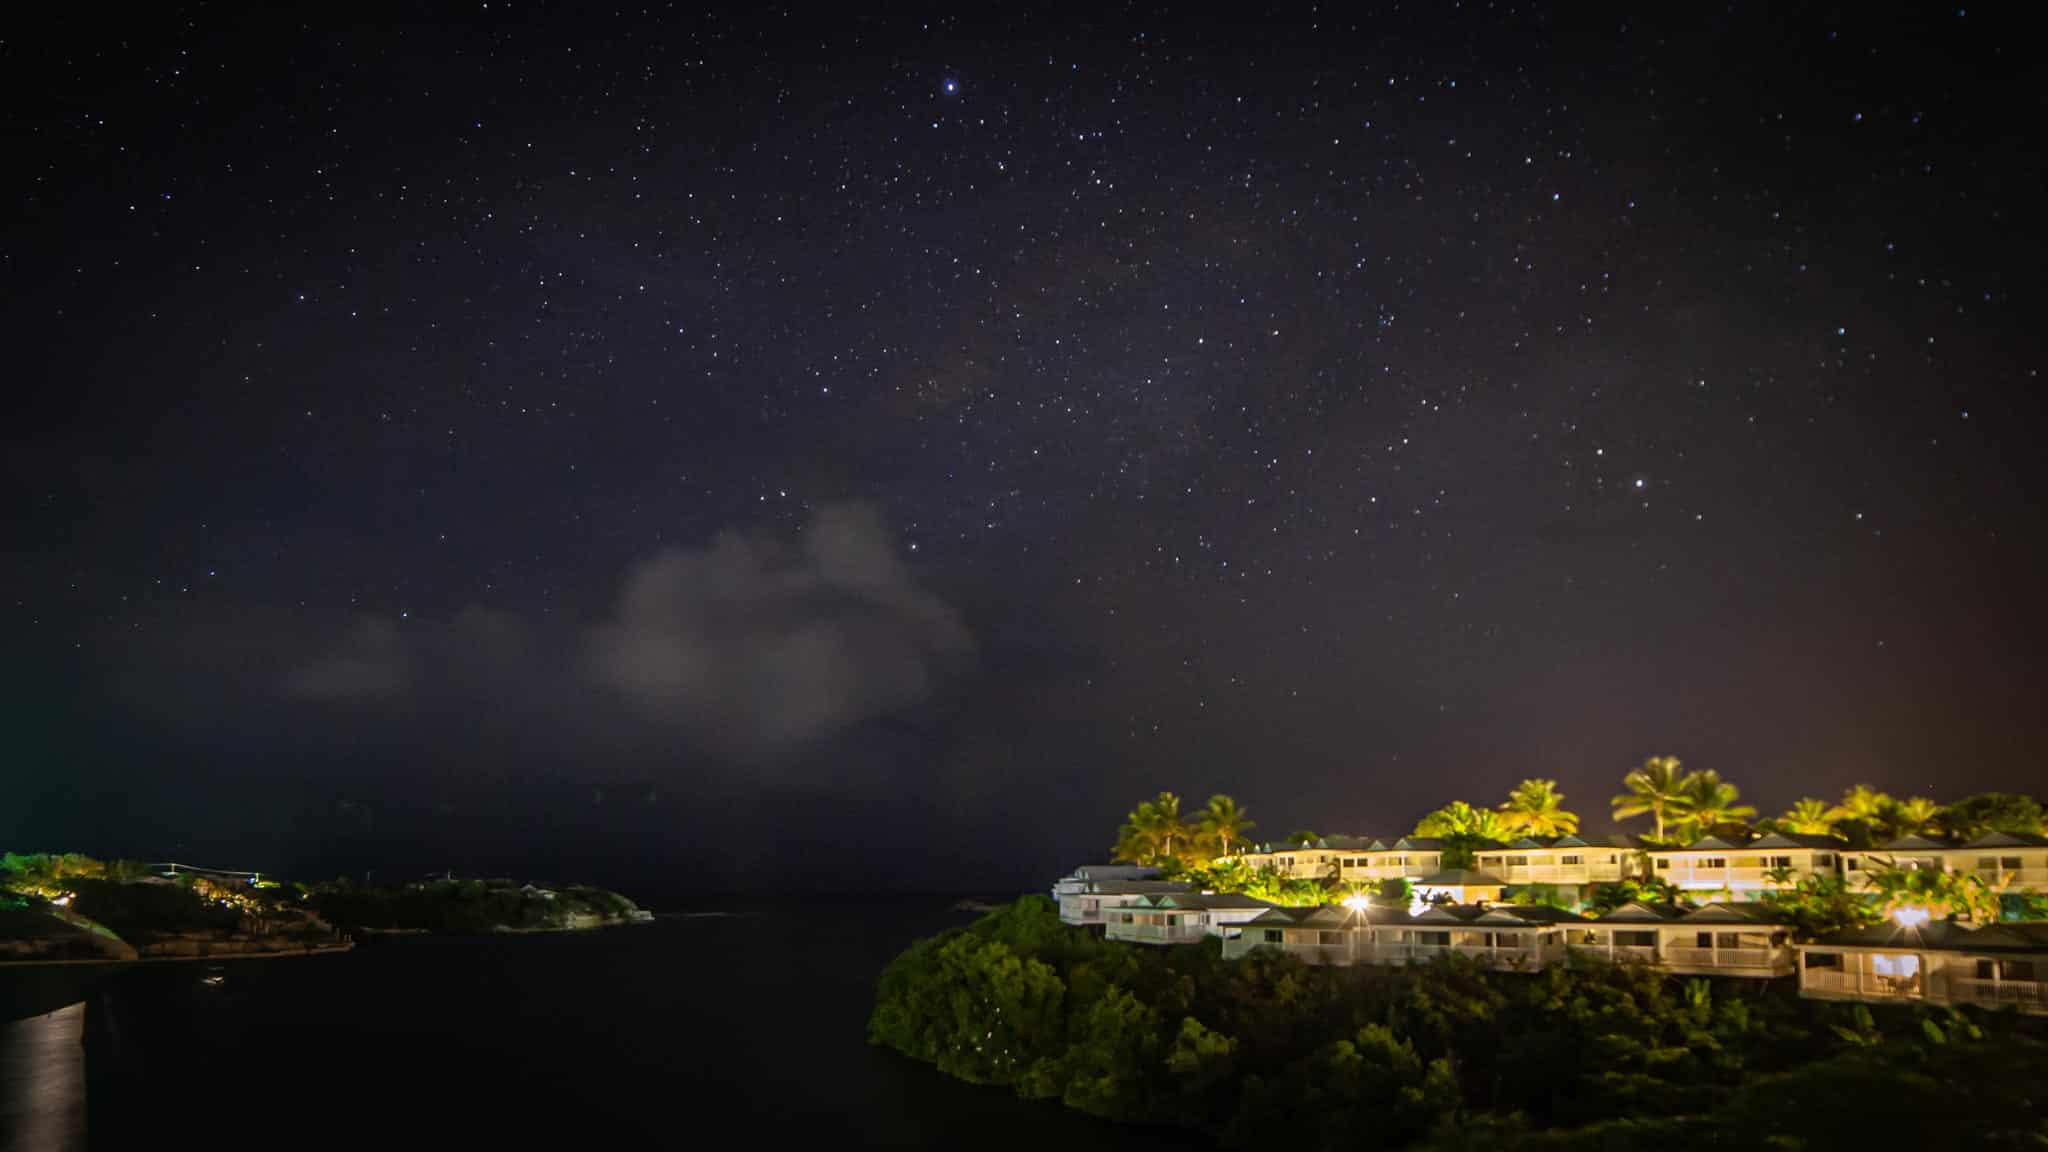 A starry sky and the ocean as viewed from a resort in Antigua